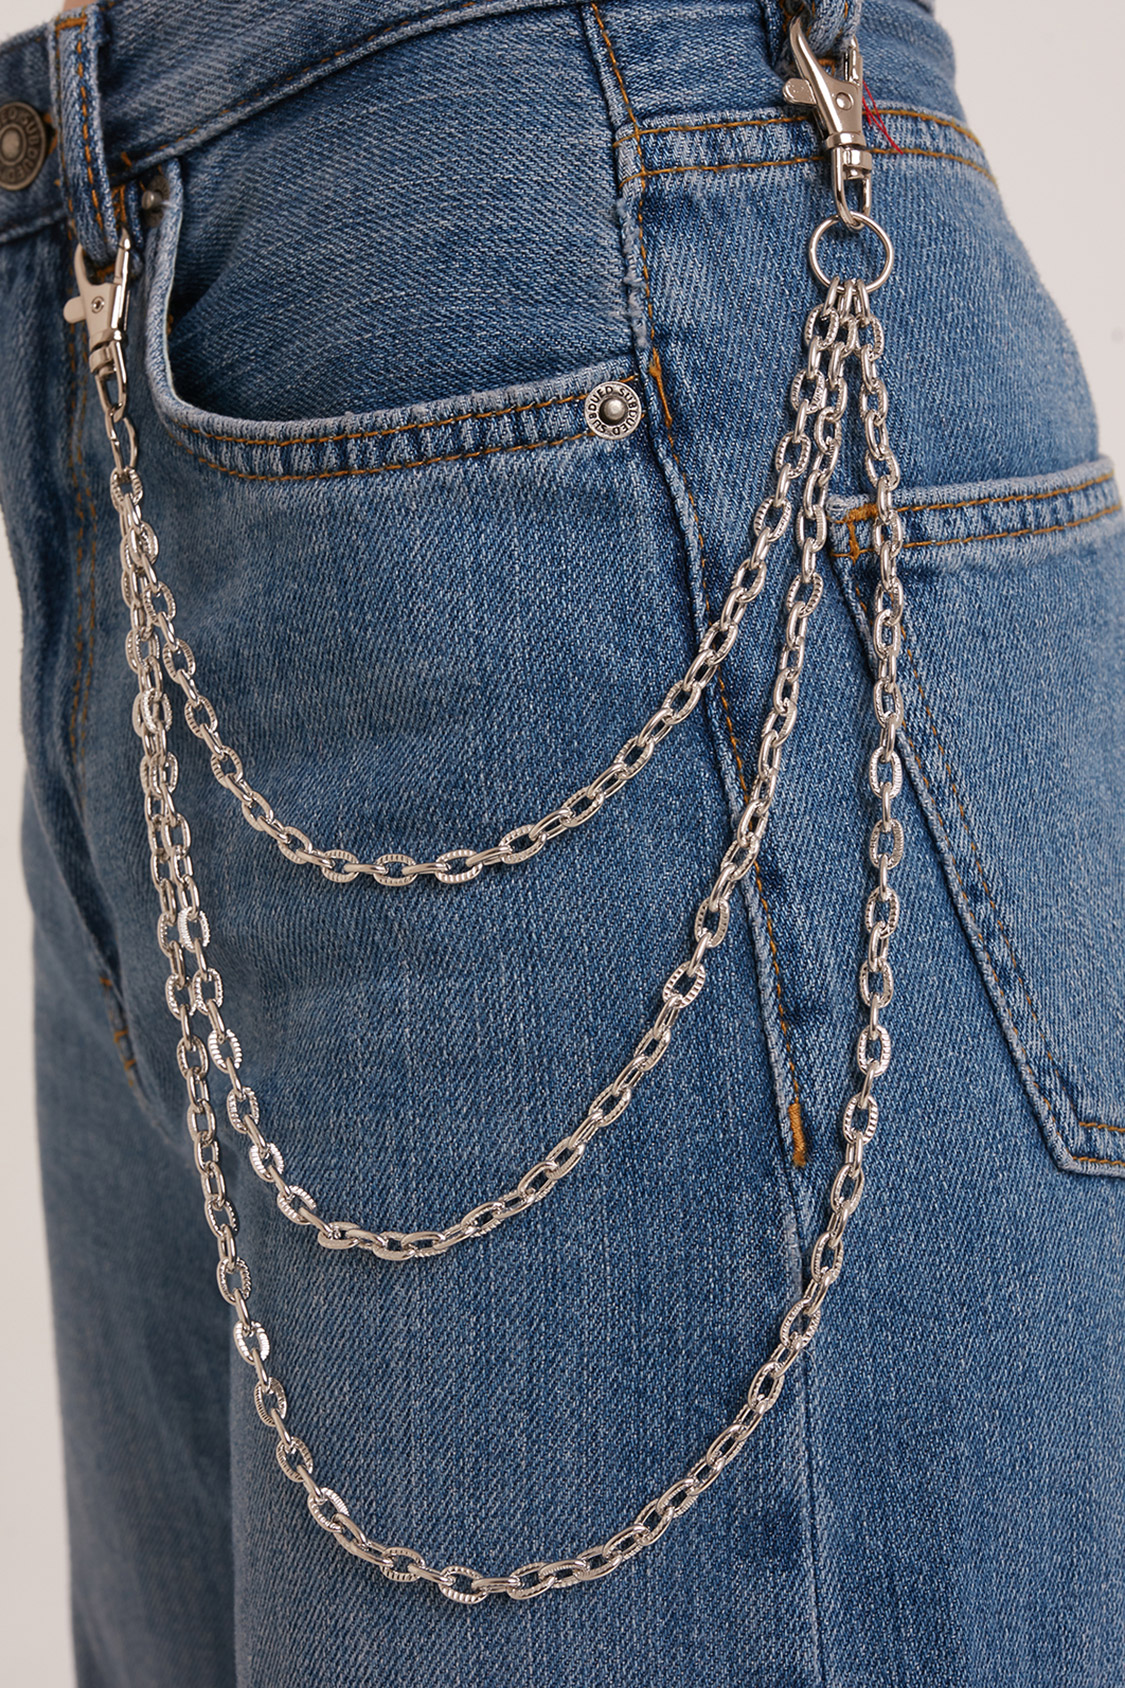 Chains belt